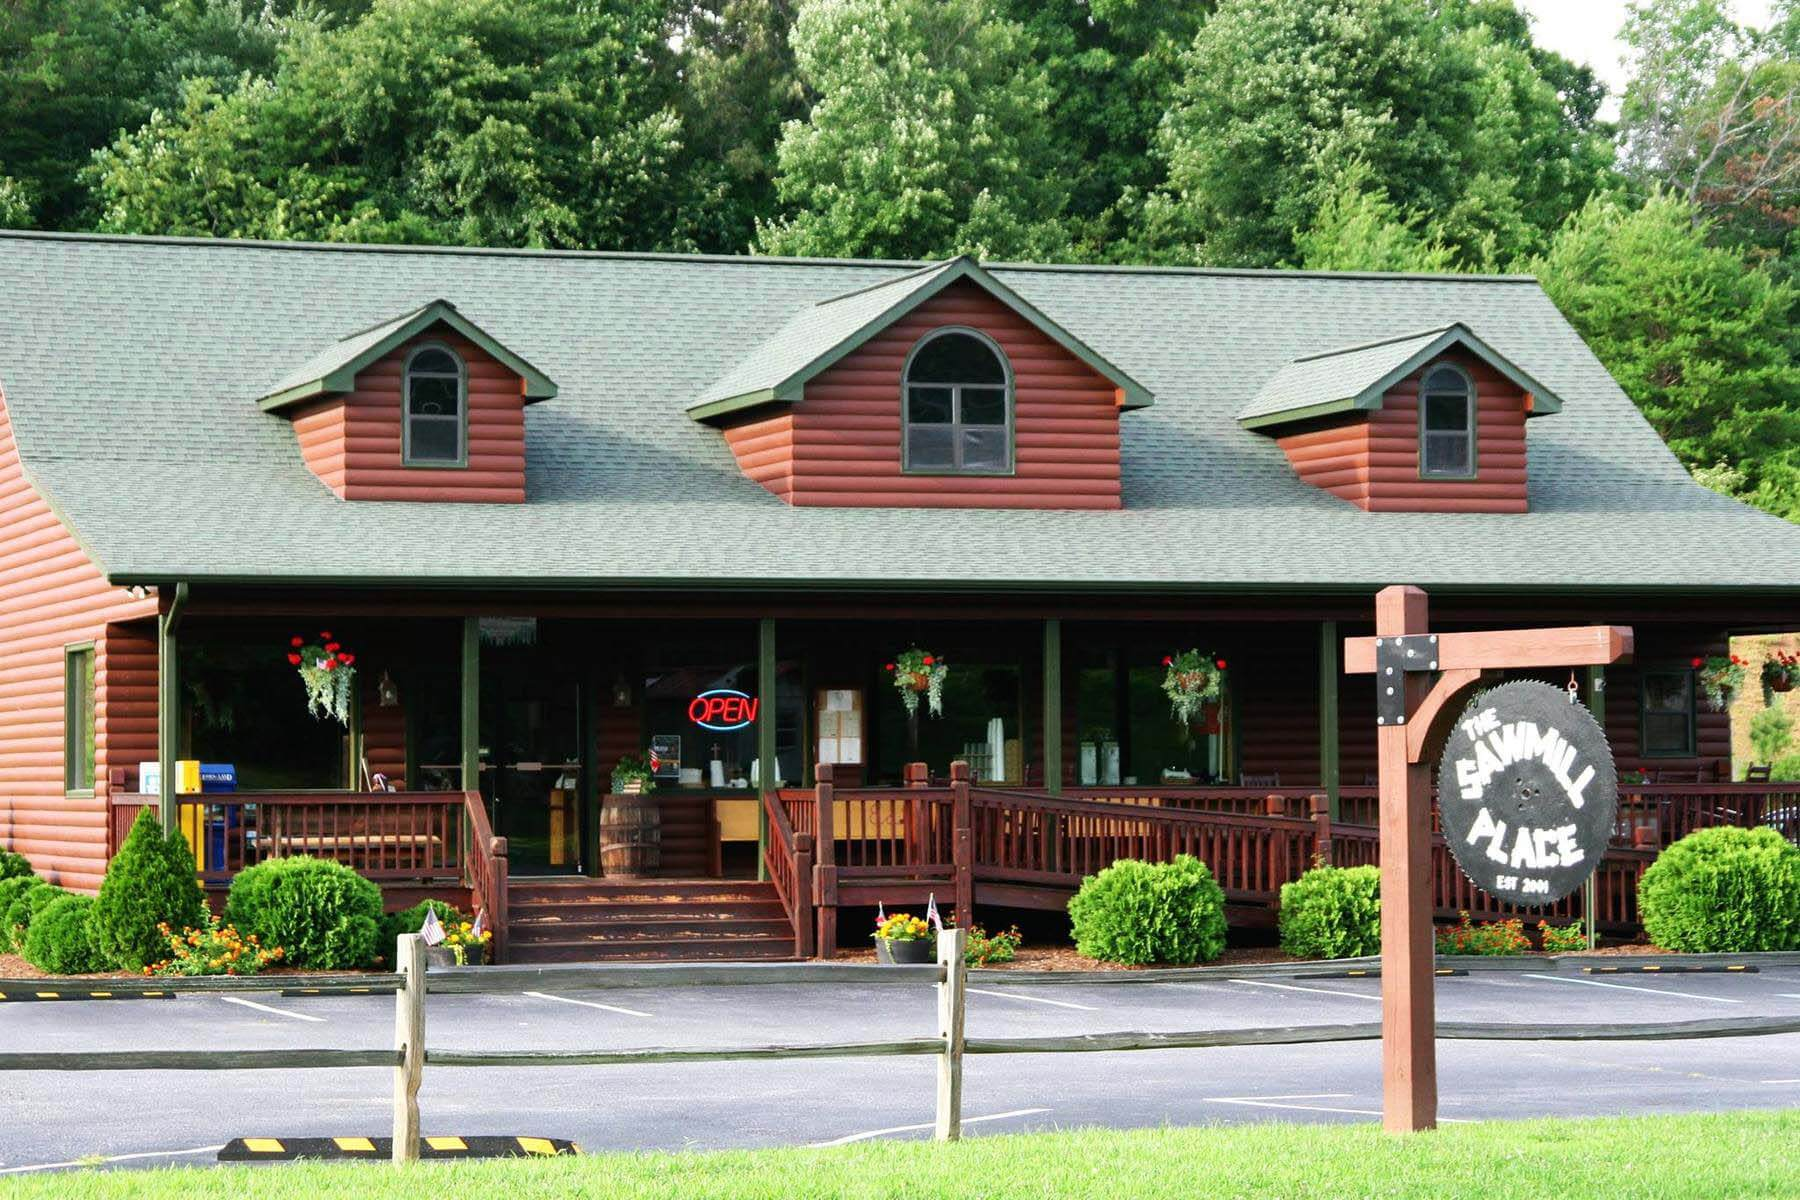 The Sawmill Place in Blairsville, GA